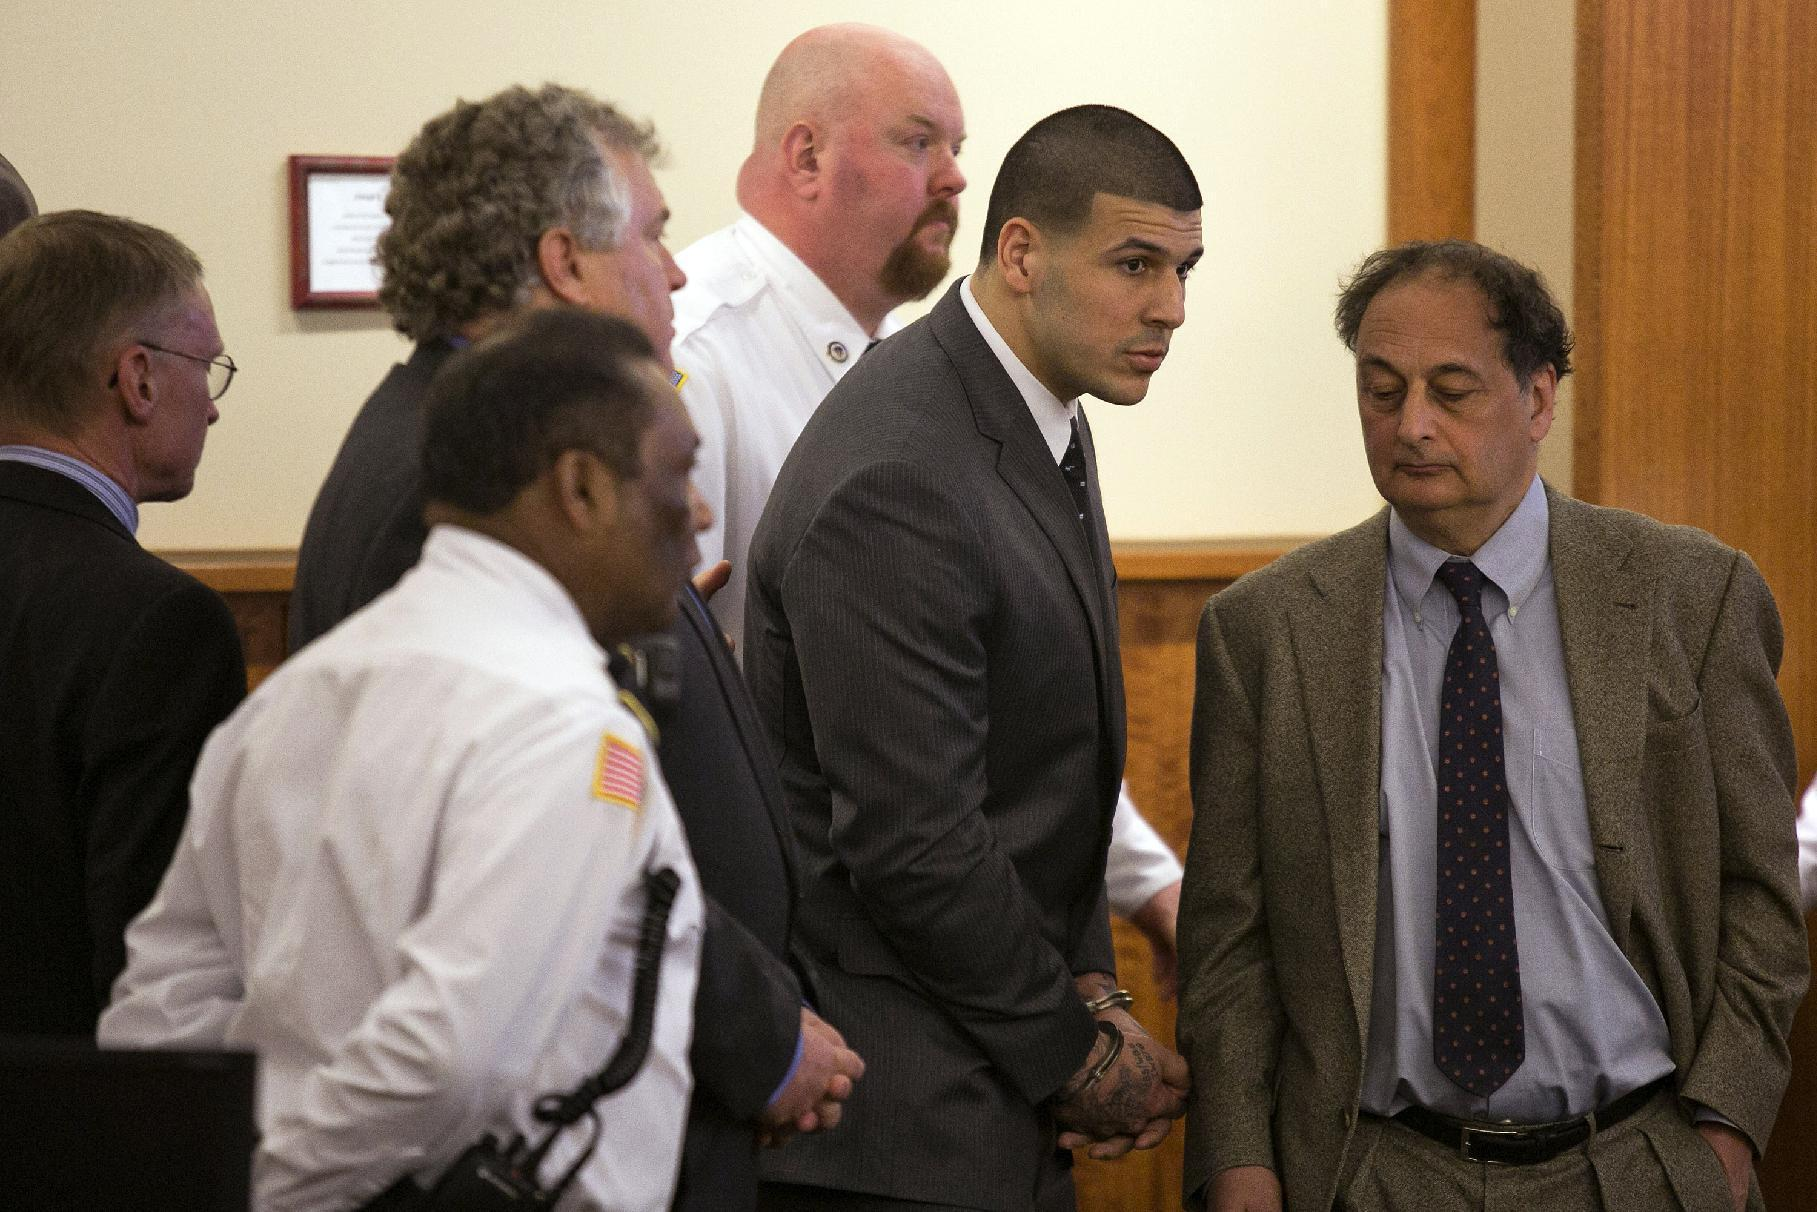 In Aaron Hernandez murder case, question lingers: Why?